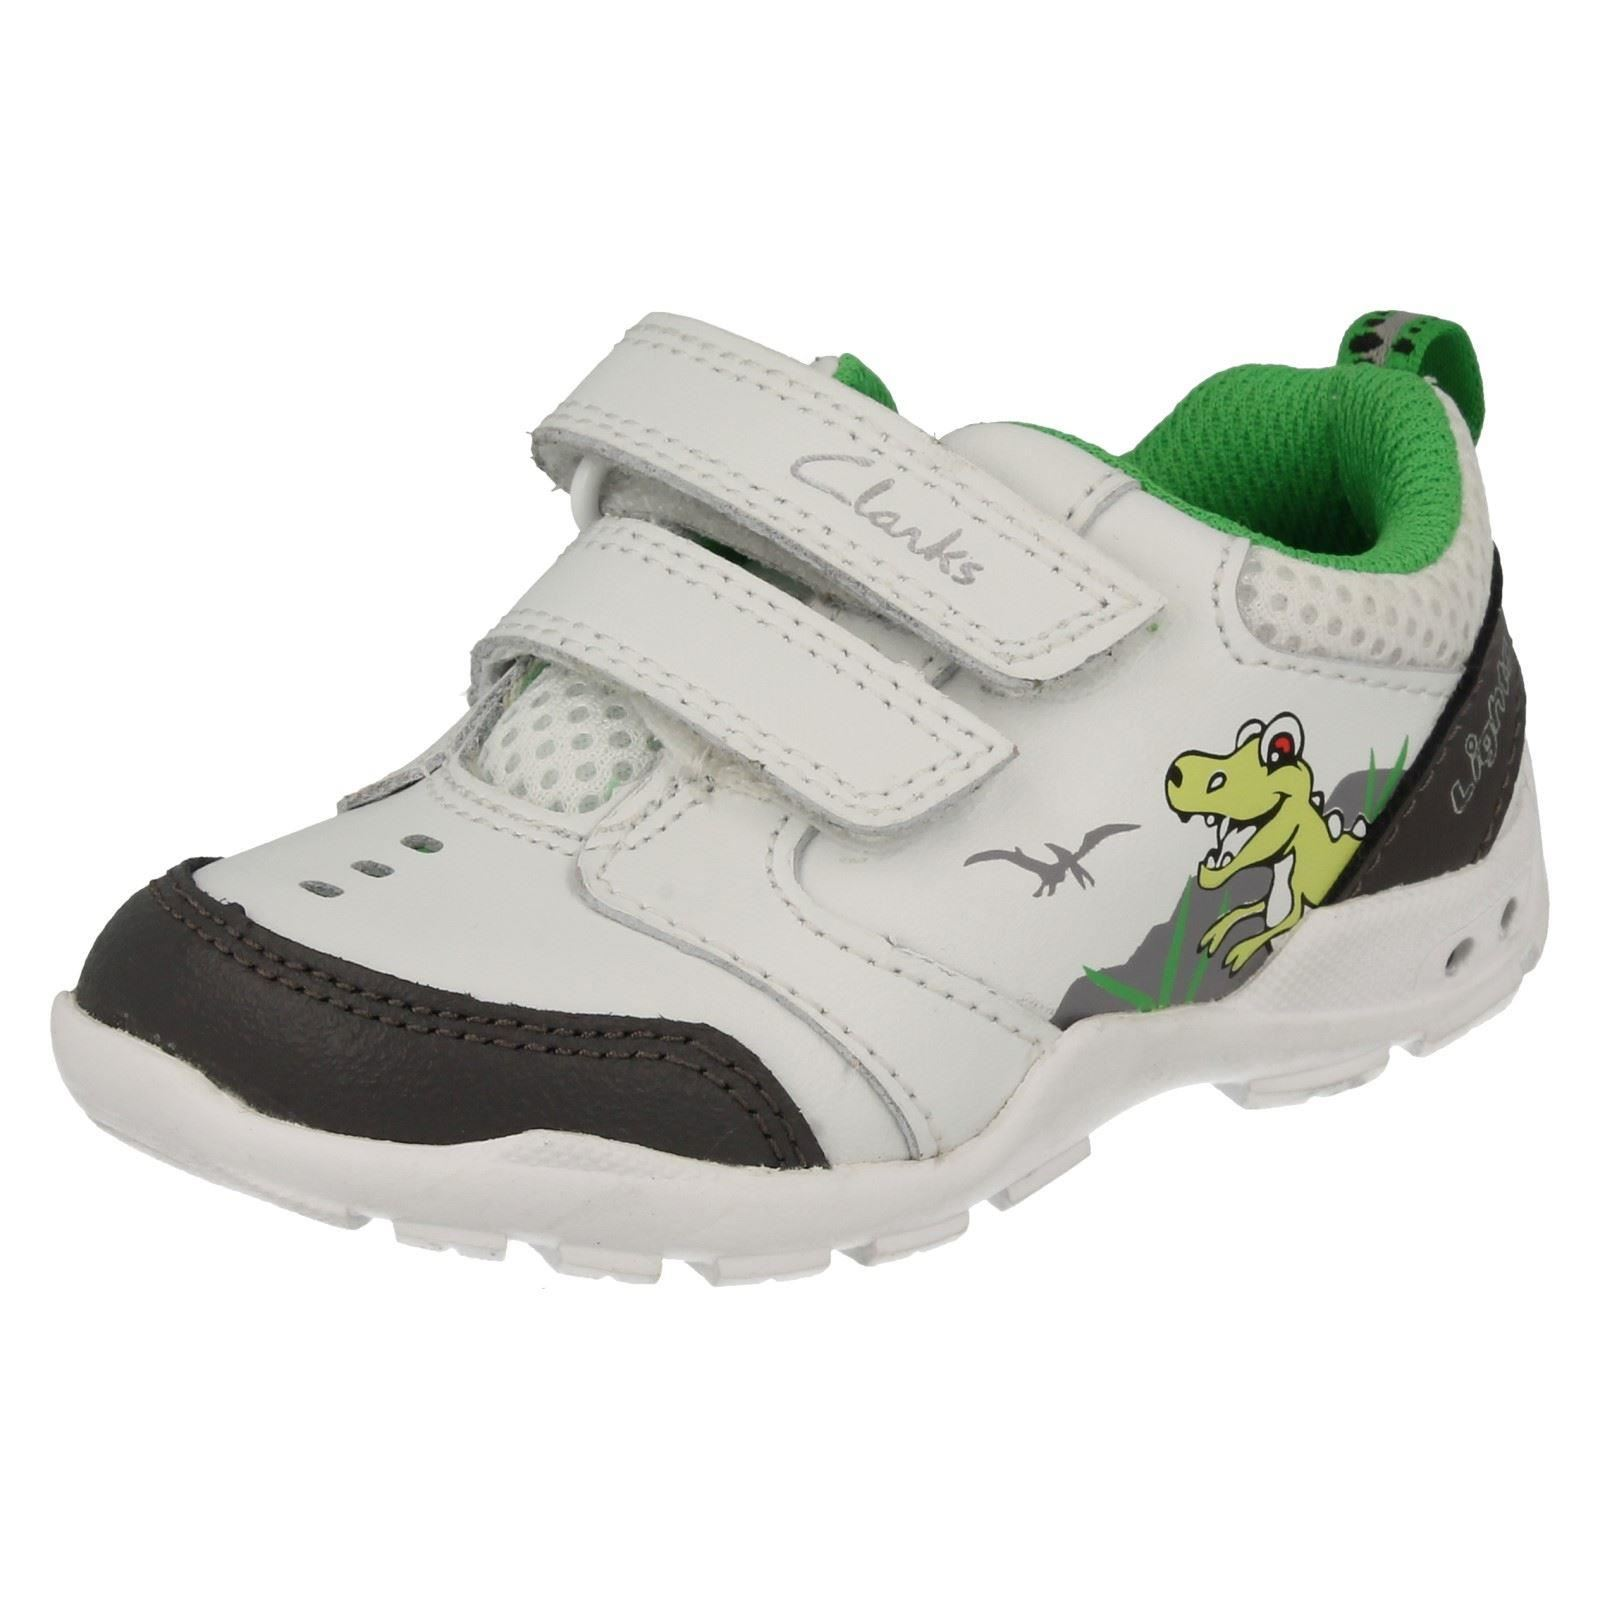 f58579f510c Details about Boys Clarks Light Up Casual Trainers Brite Dino